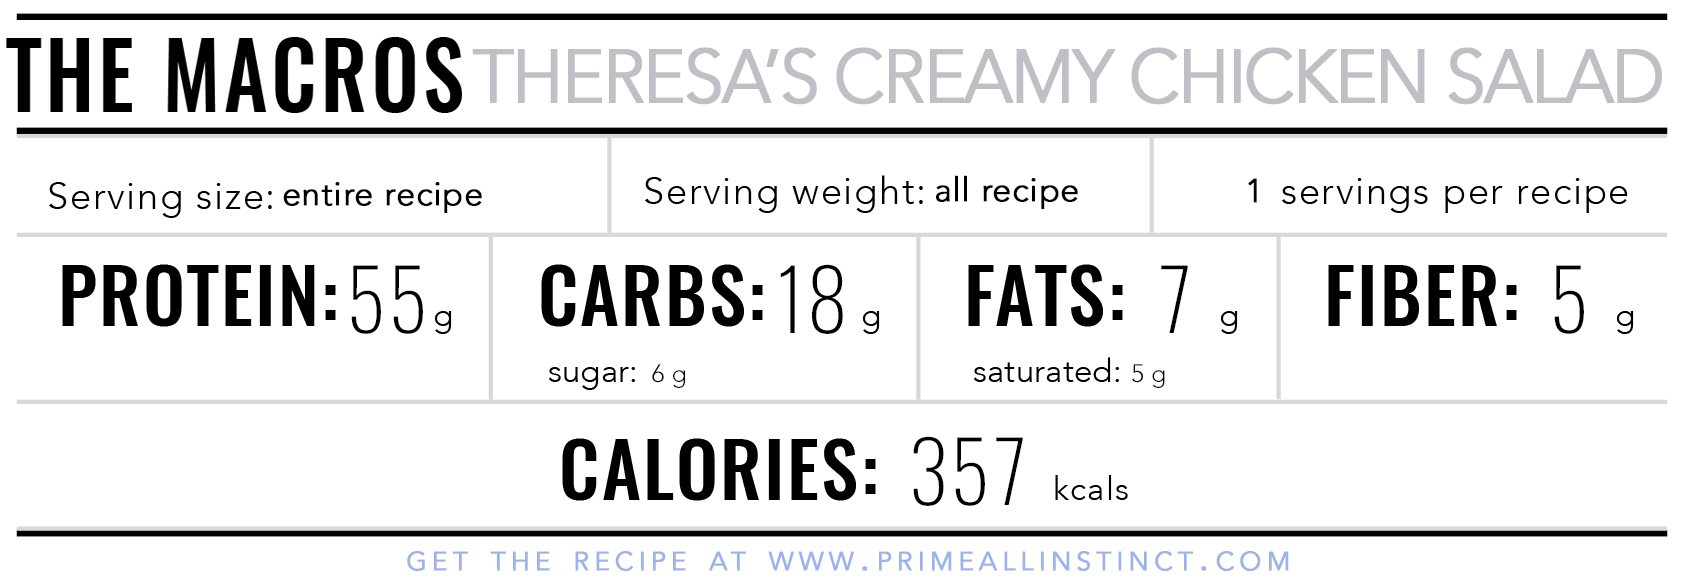 R9_Theresa's Creamy Chicken Salad.png